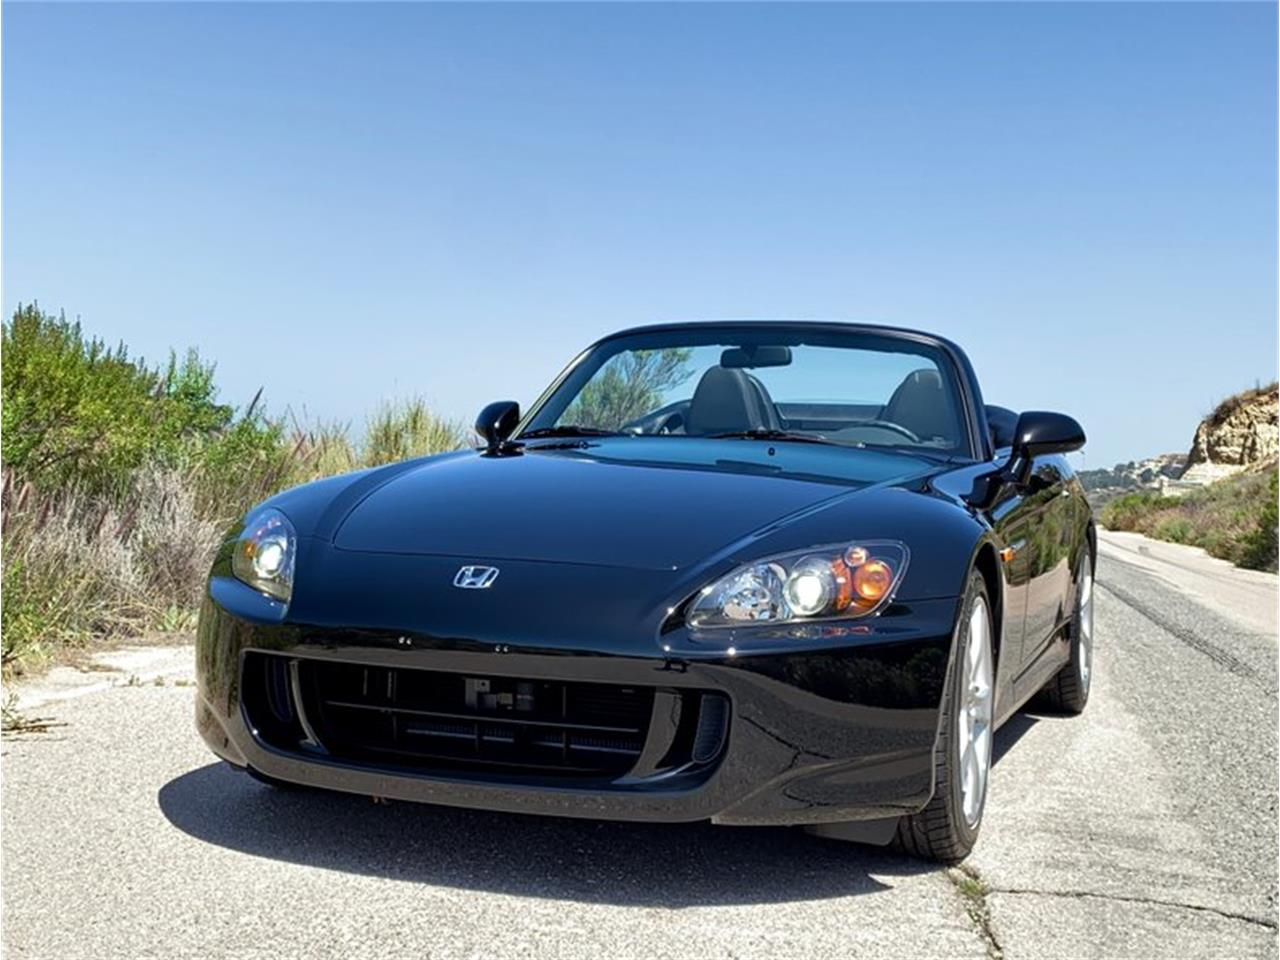 2009 Honda S2000 for sale in San Diego, CA – photo 4